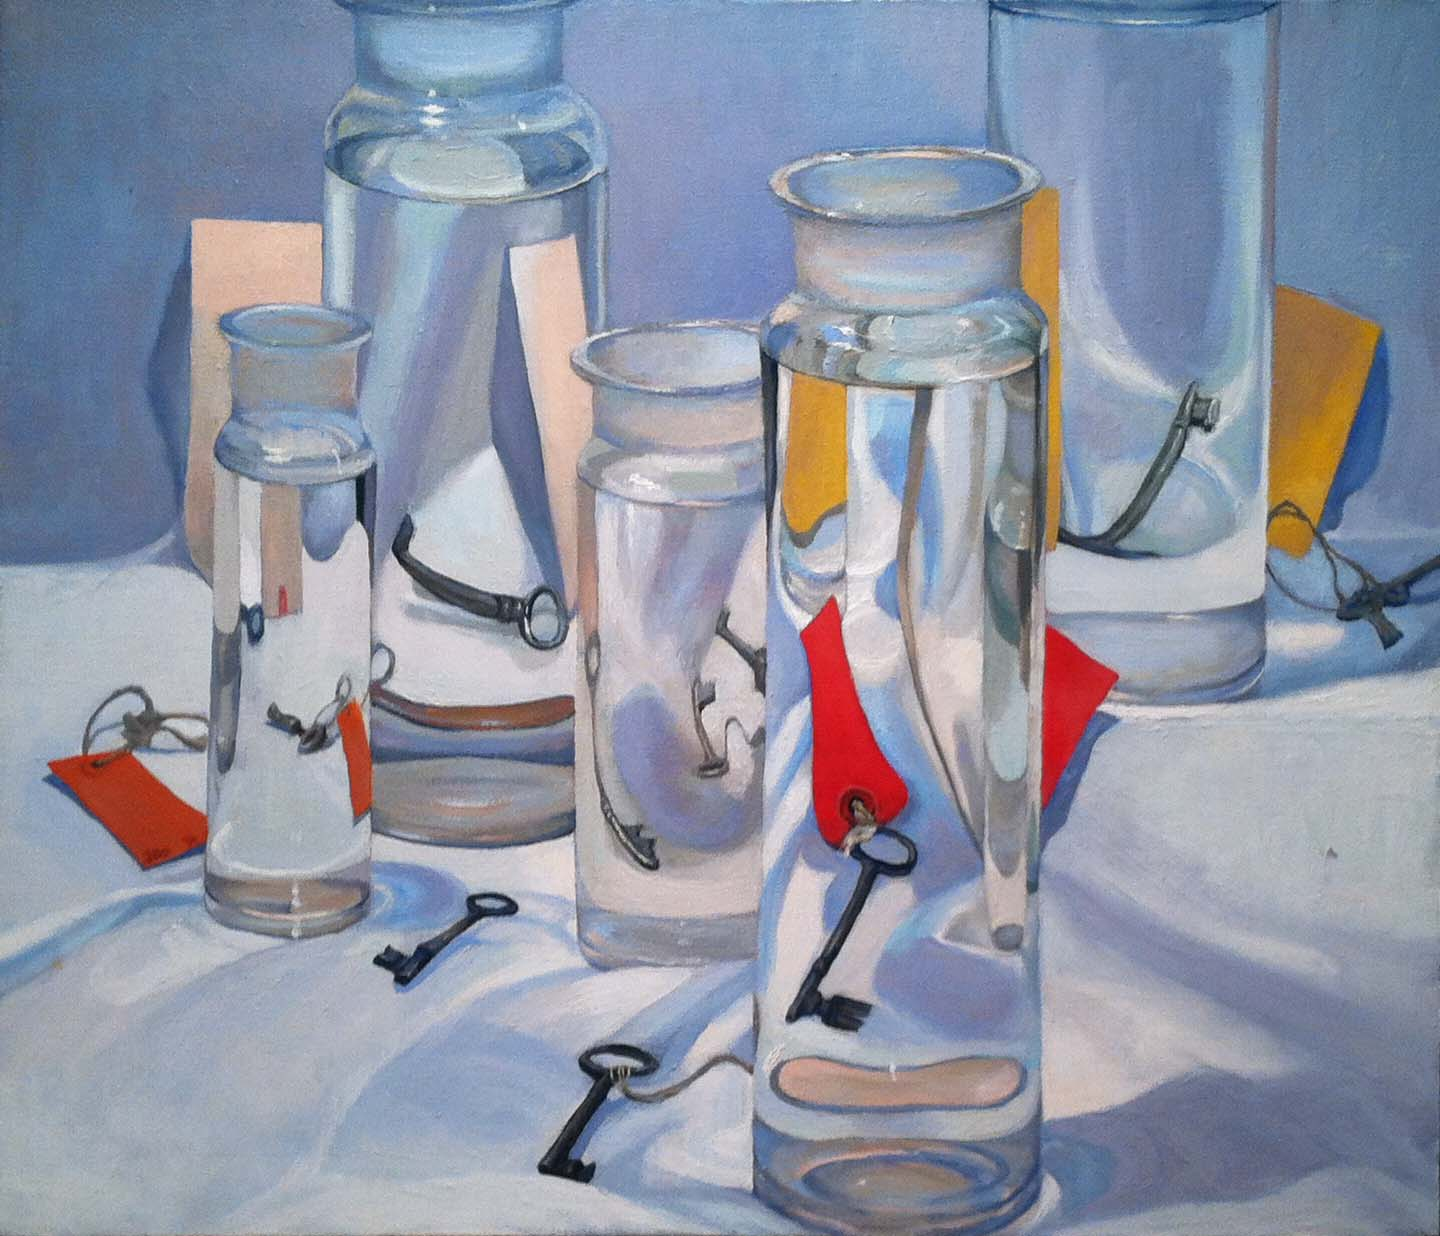 Still Life with Keys, 1976 oil on canvas, 30 x 36 inches